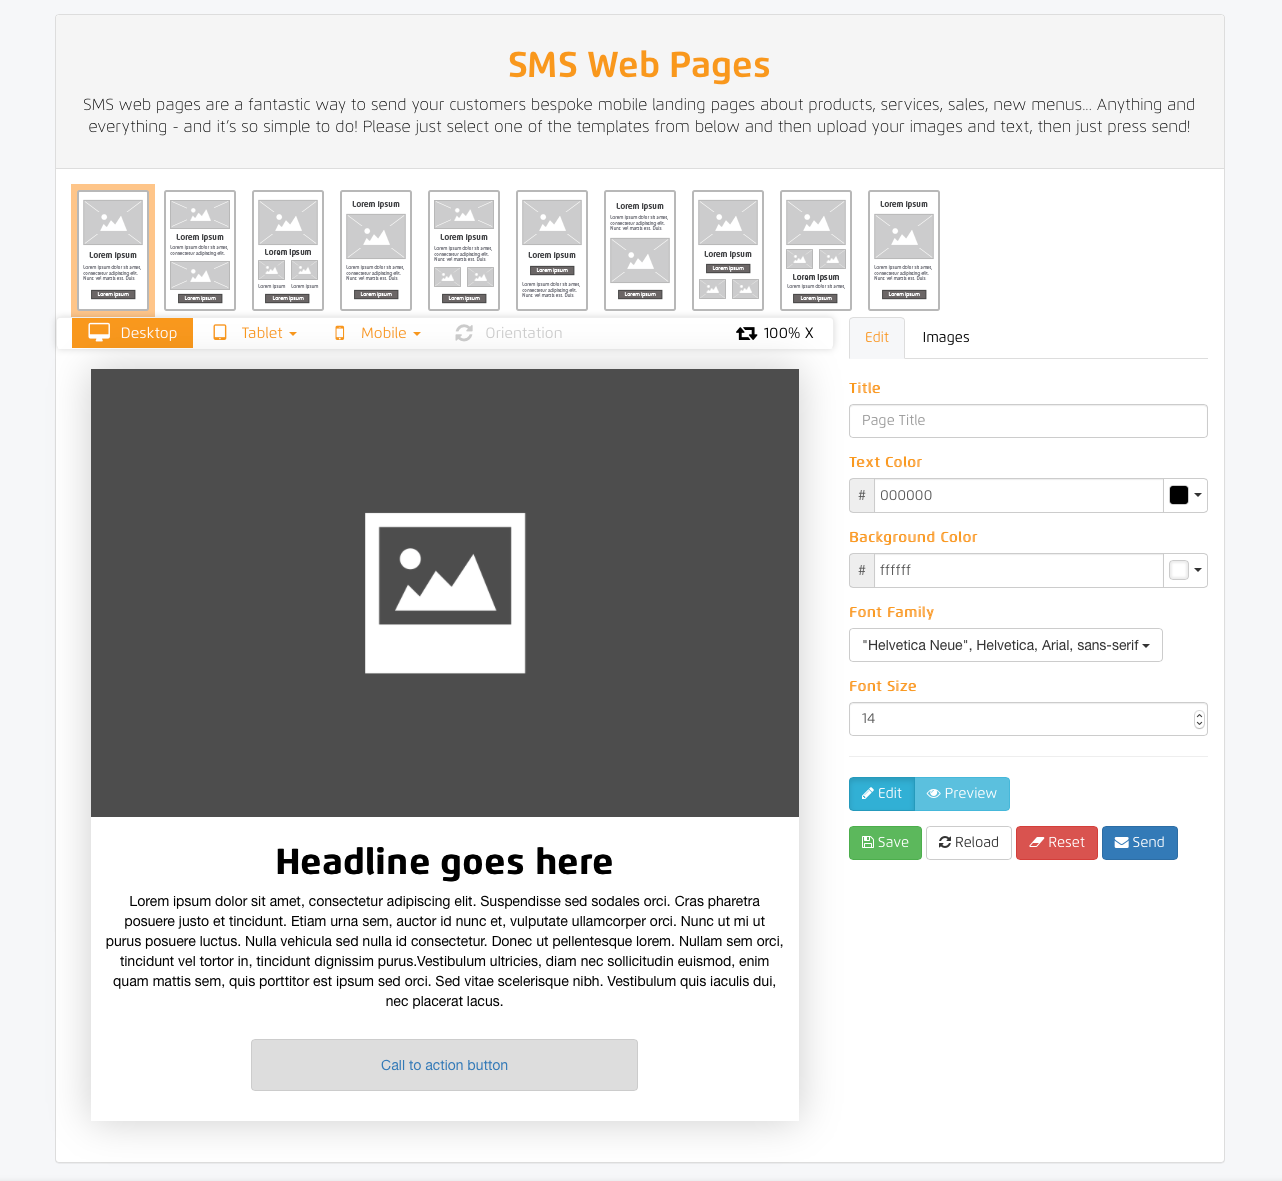 SMS Web Pages Home Screen